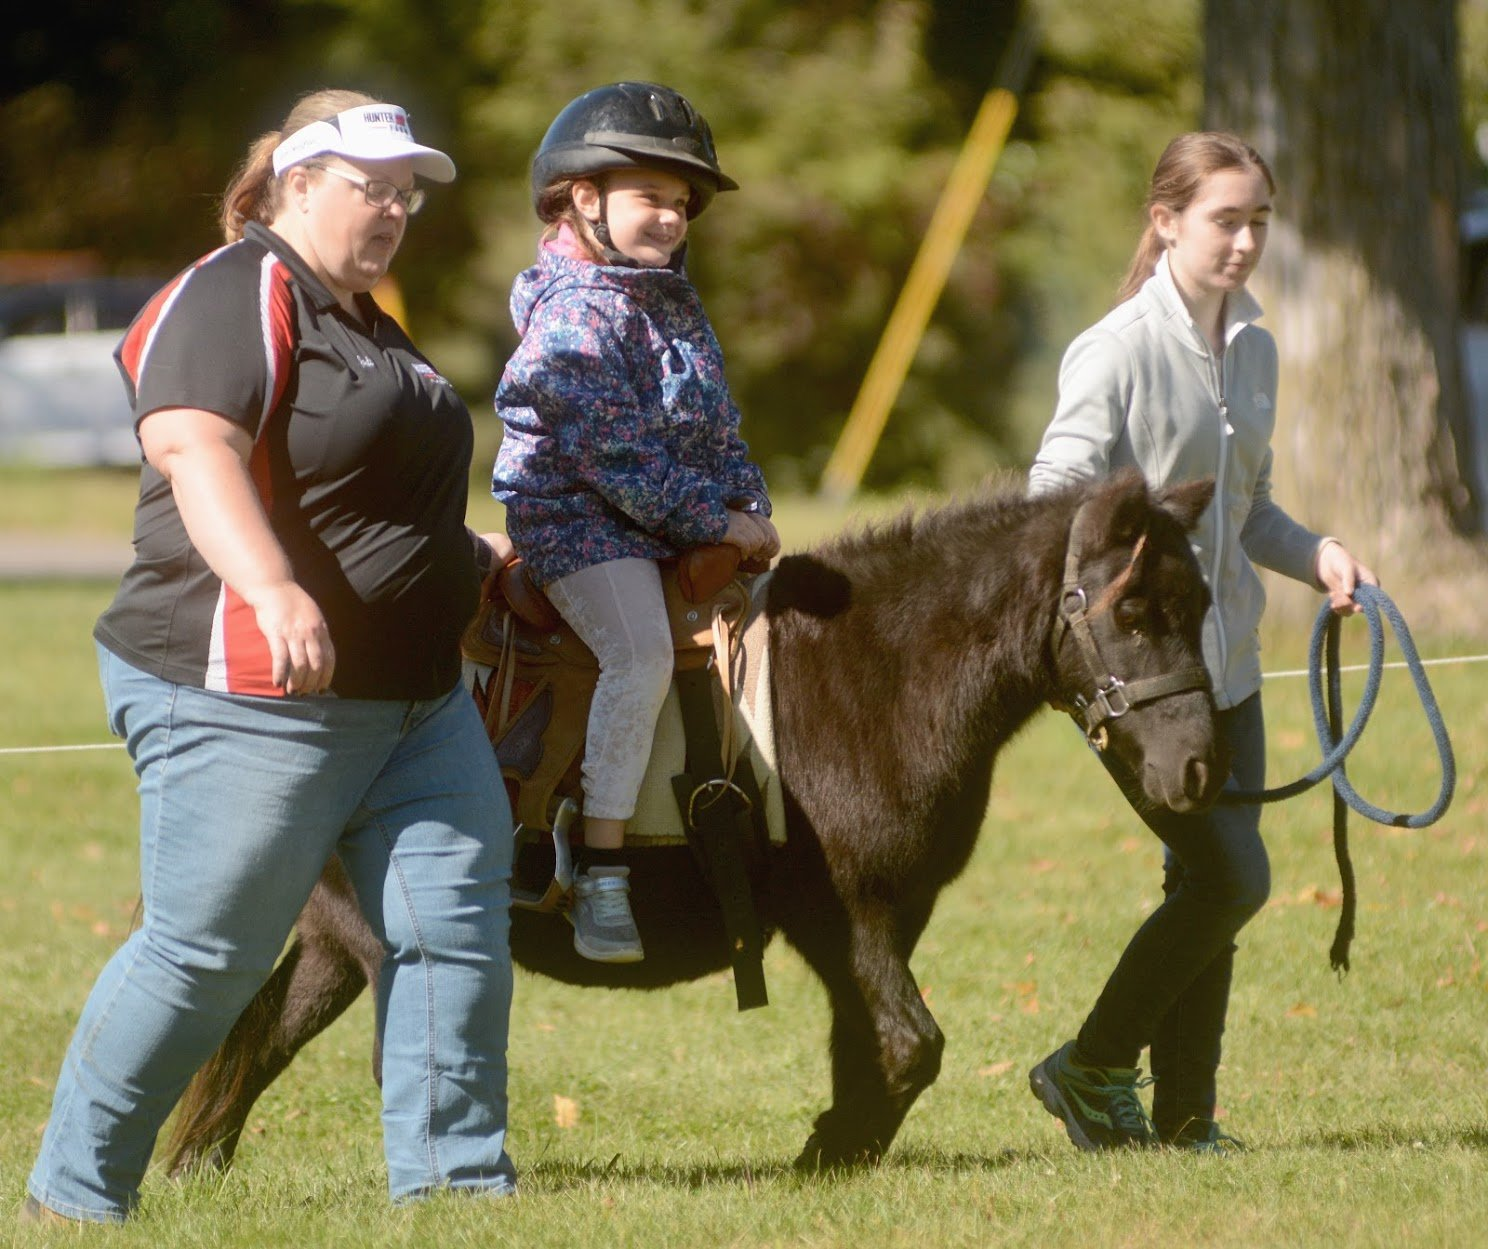 LOCKTOBERFEST FUN — Maci Jaynes 4, daughter of Brandyn Jaynes, enjoys a horse rides with handlers from Hunter Hack Farm at Locktoberfest which was held at Bellamy Harbor Park on Saturday.